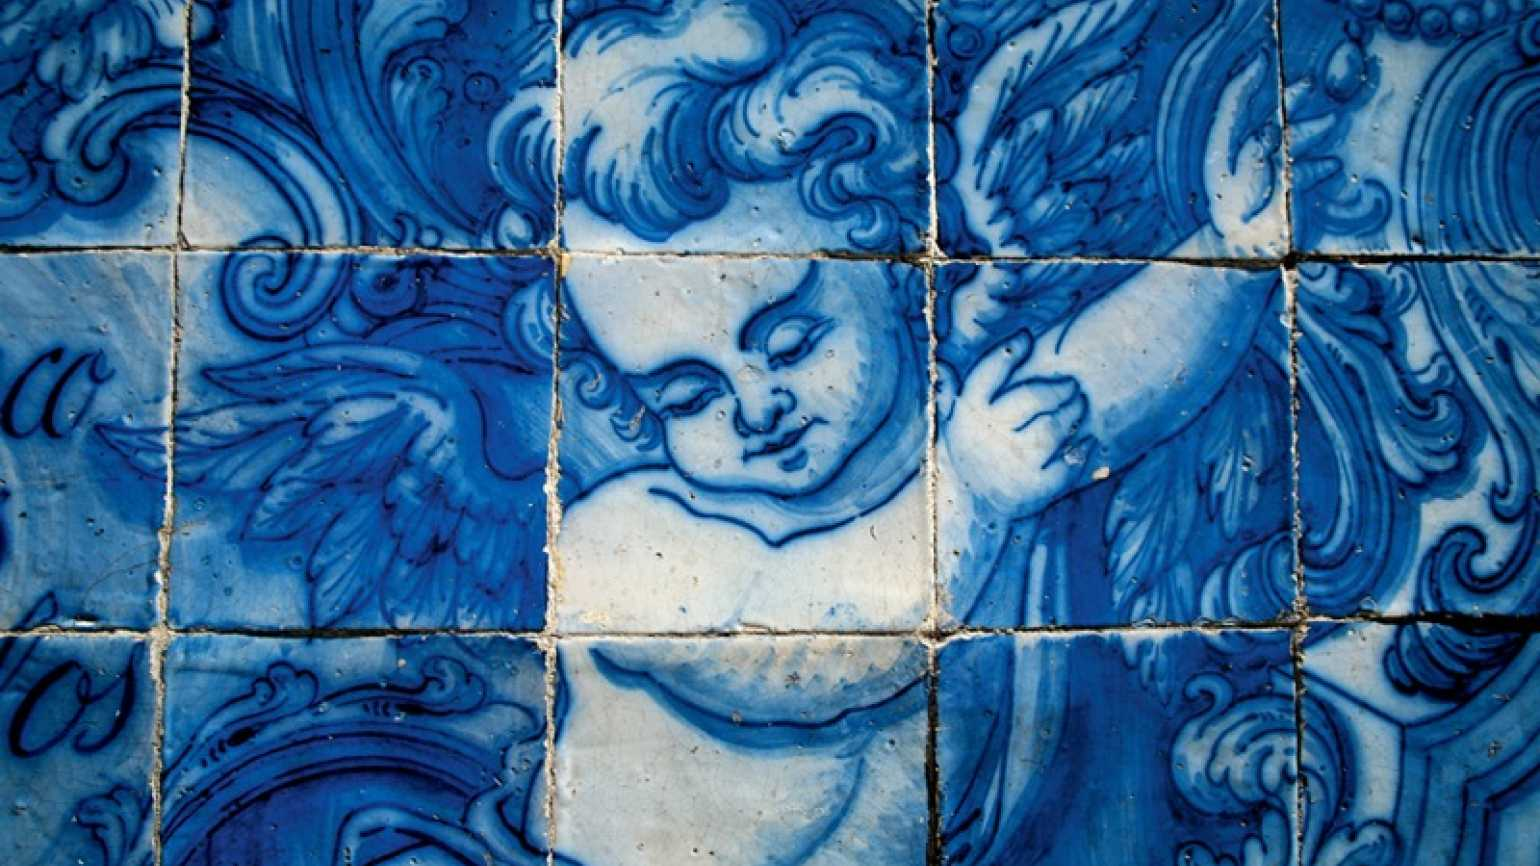 A blue and white tile angel from Portugal